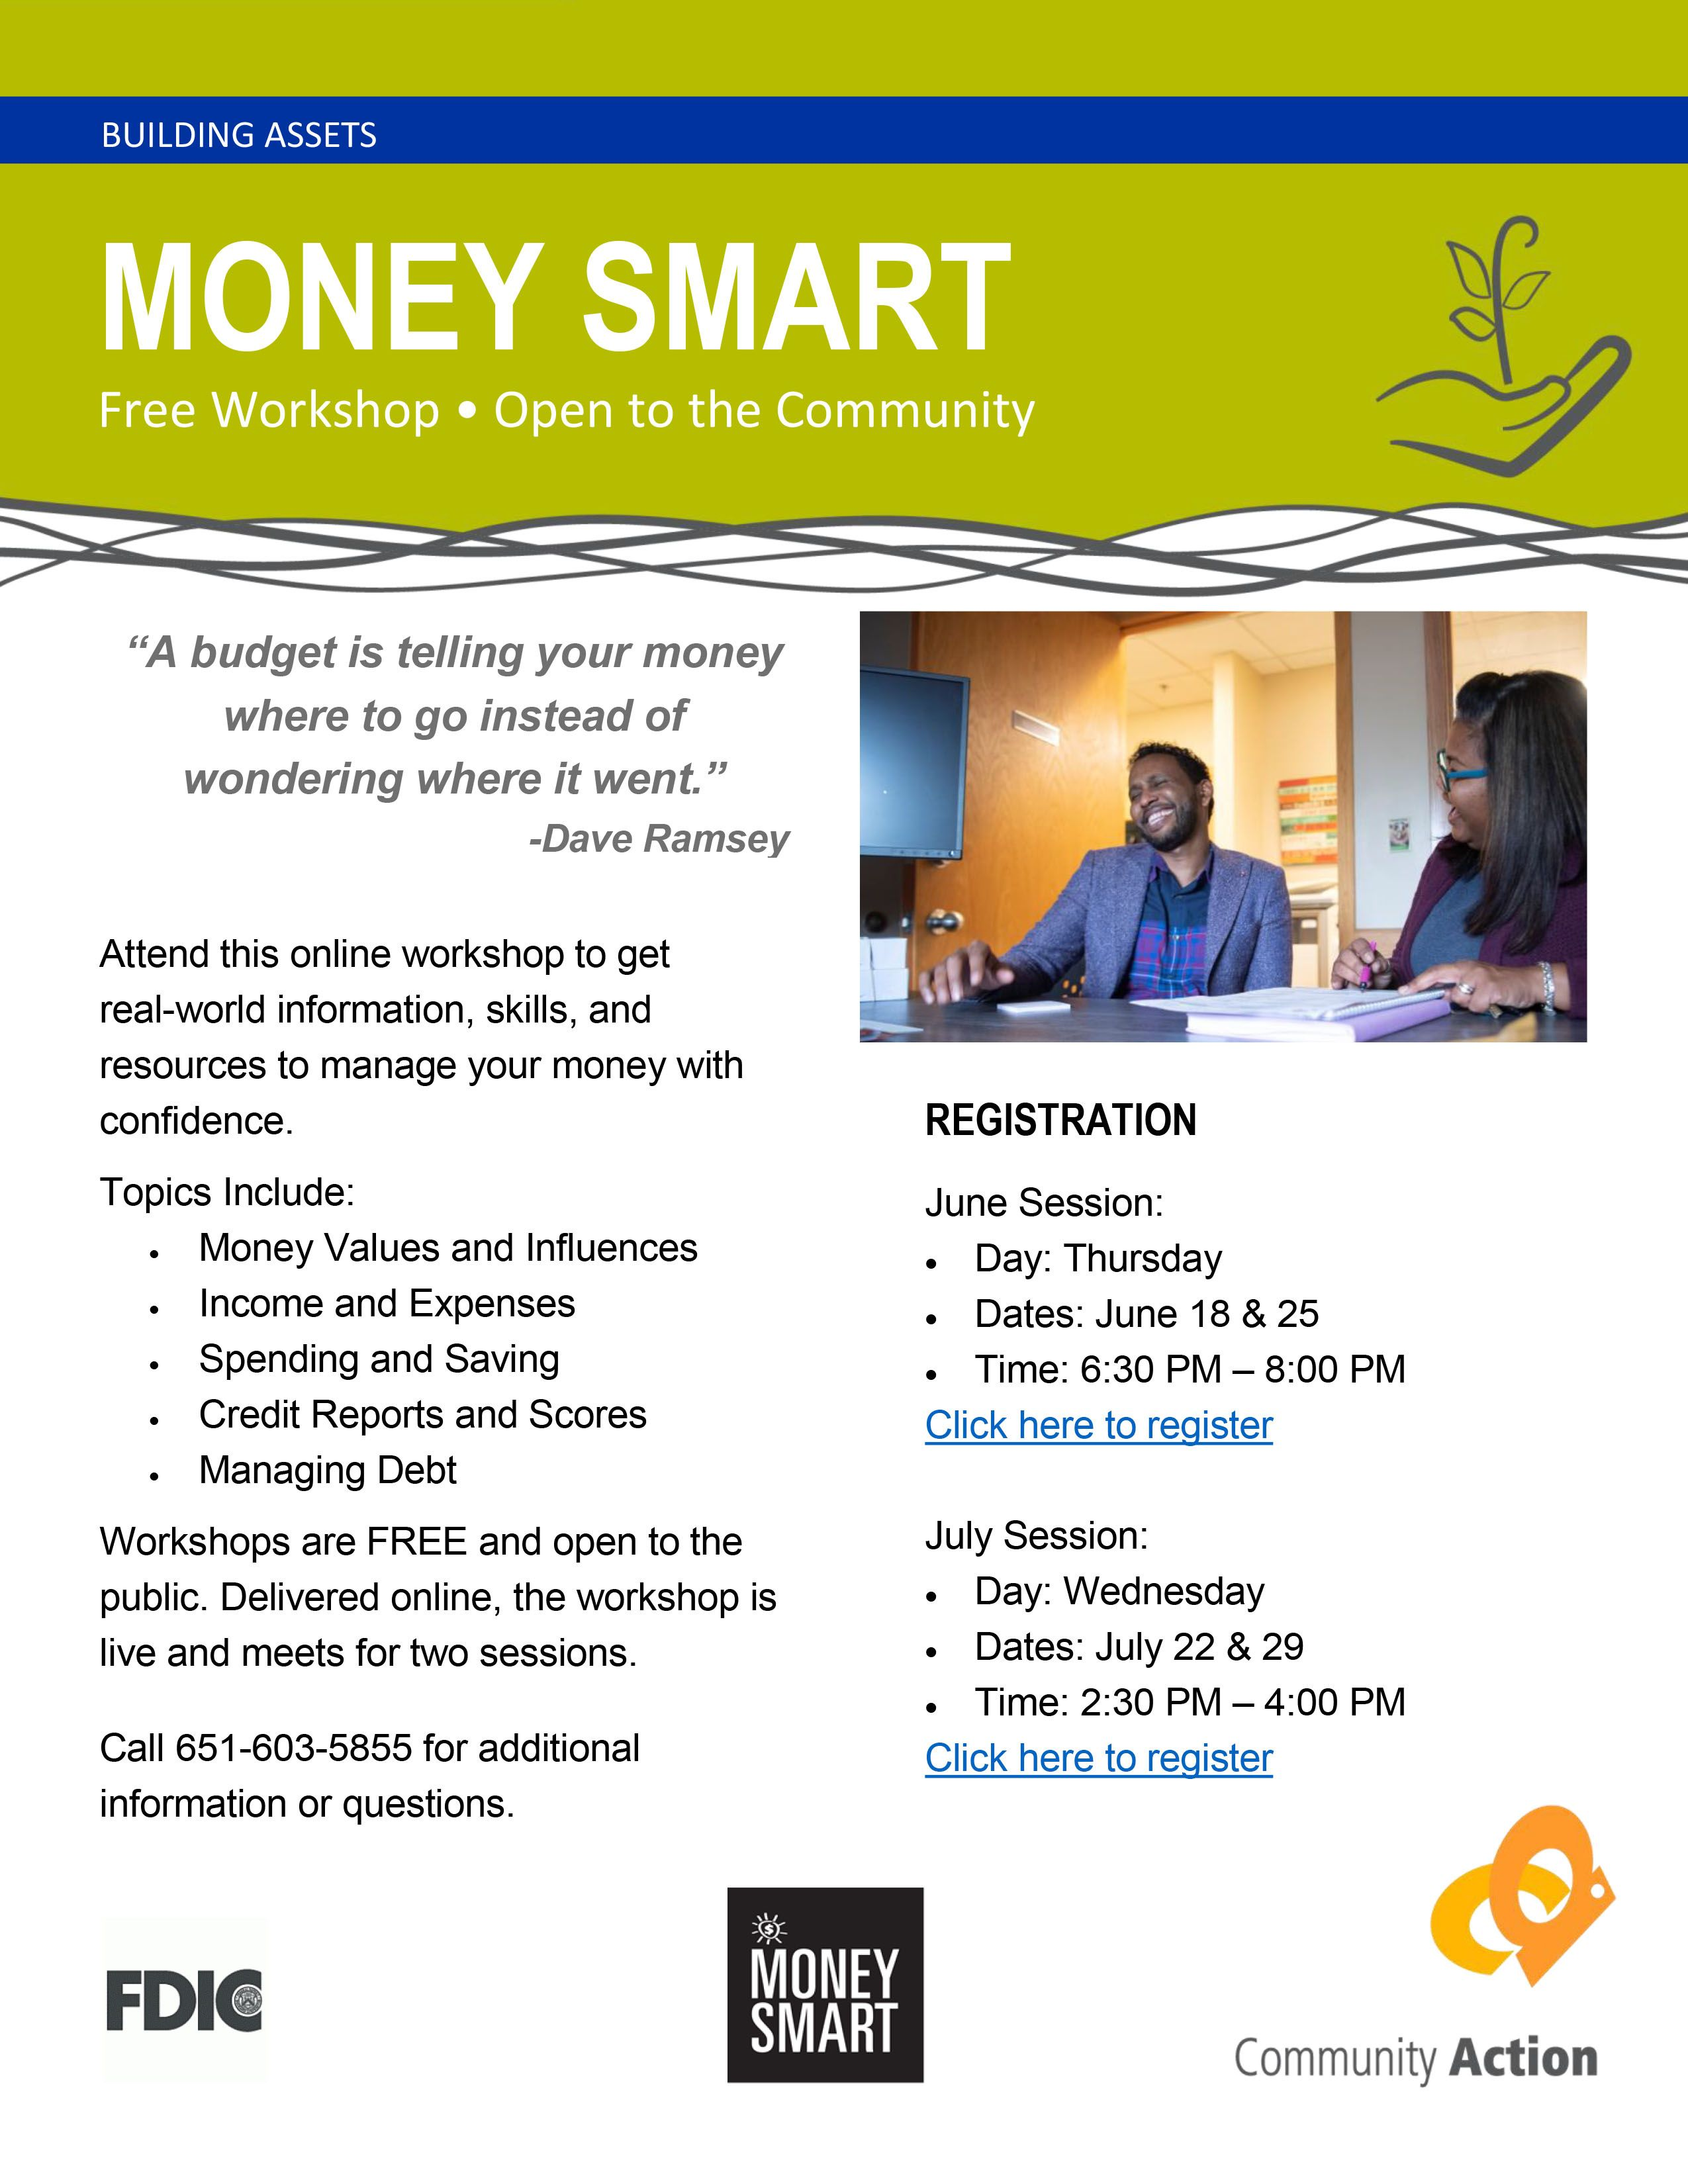 Money Smart Workshops Offered in June and July